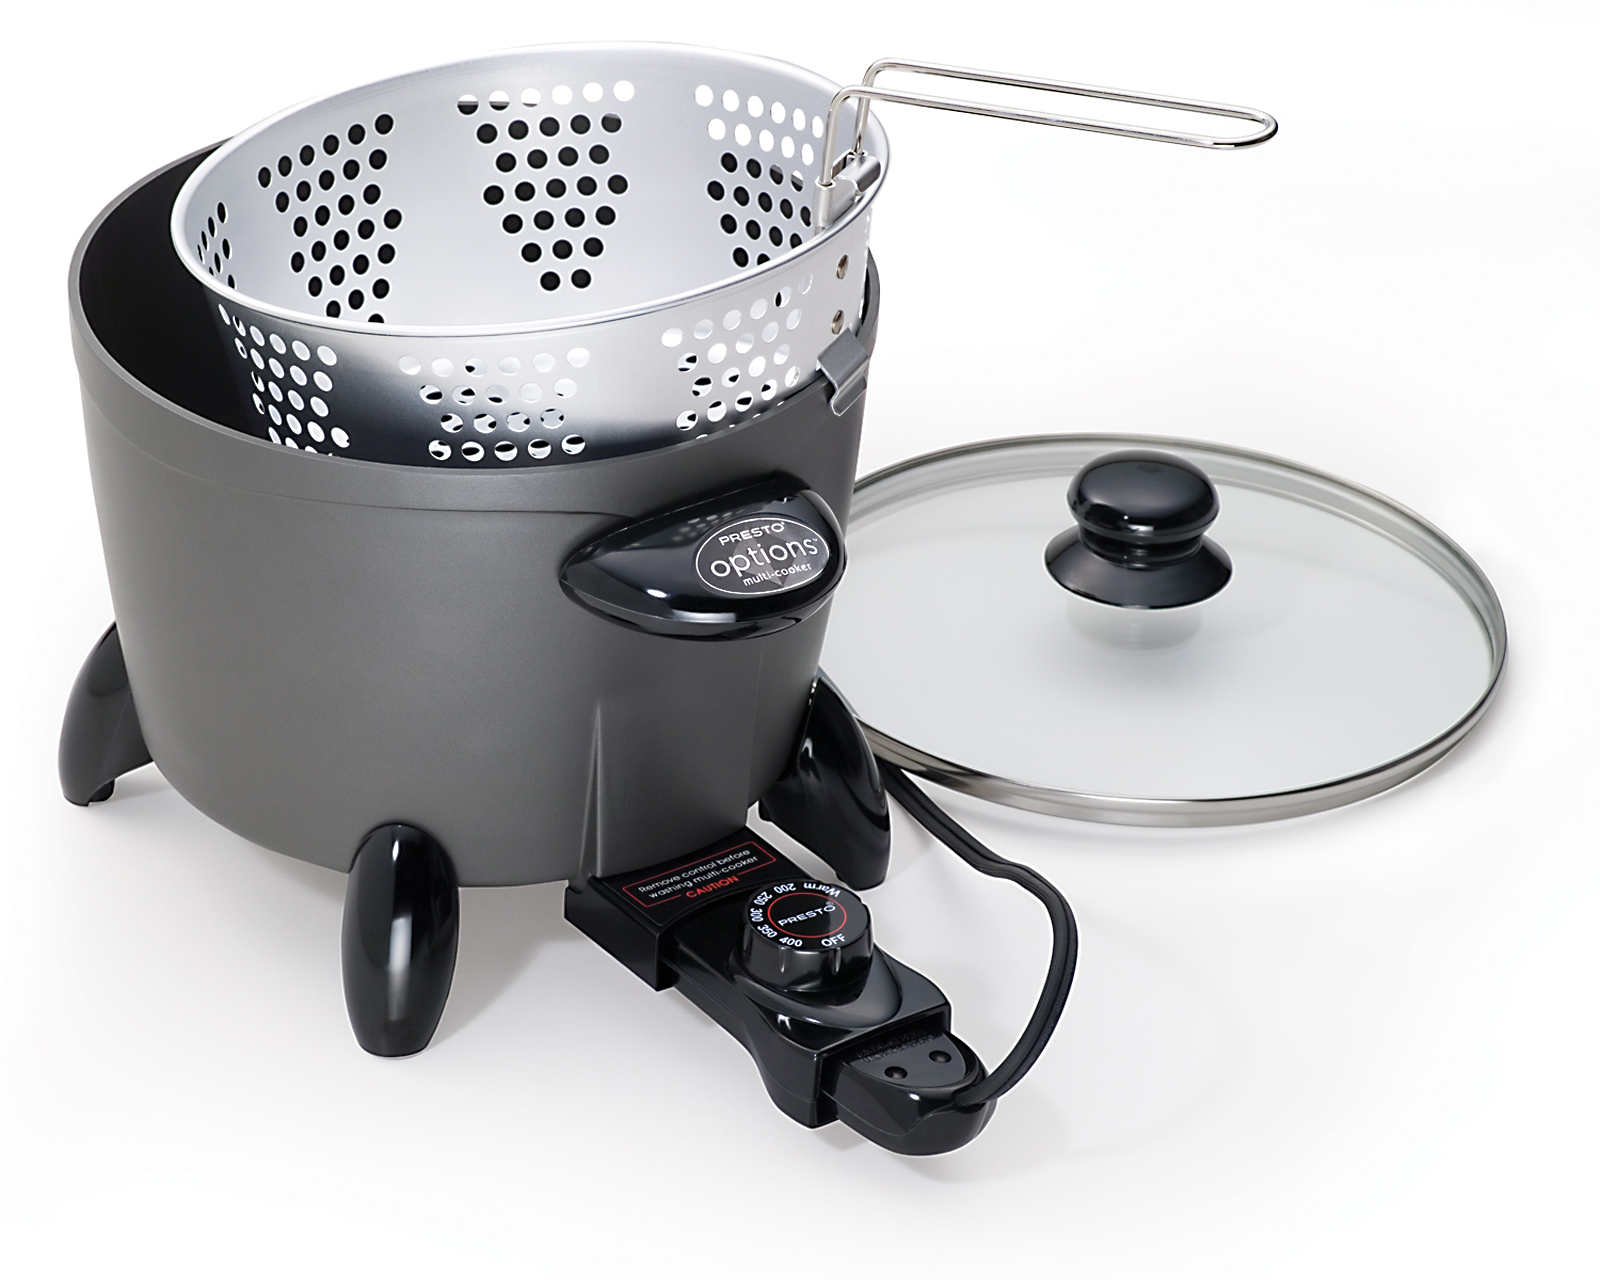 Presto 6 qt. Options® Multi-Cooker/Steamer